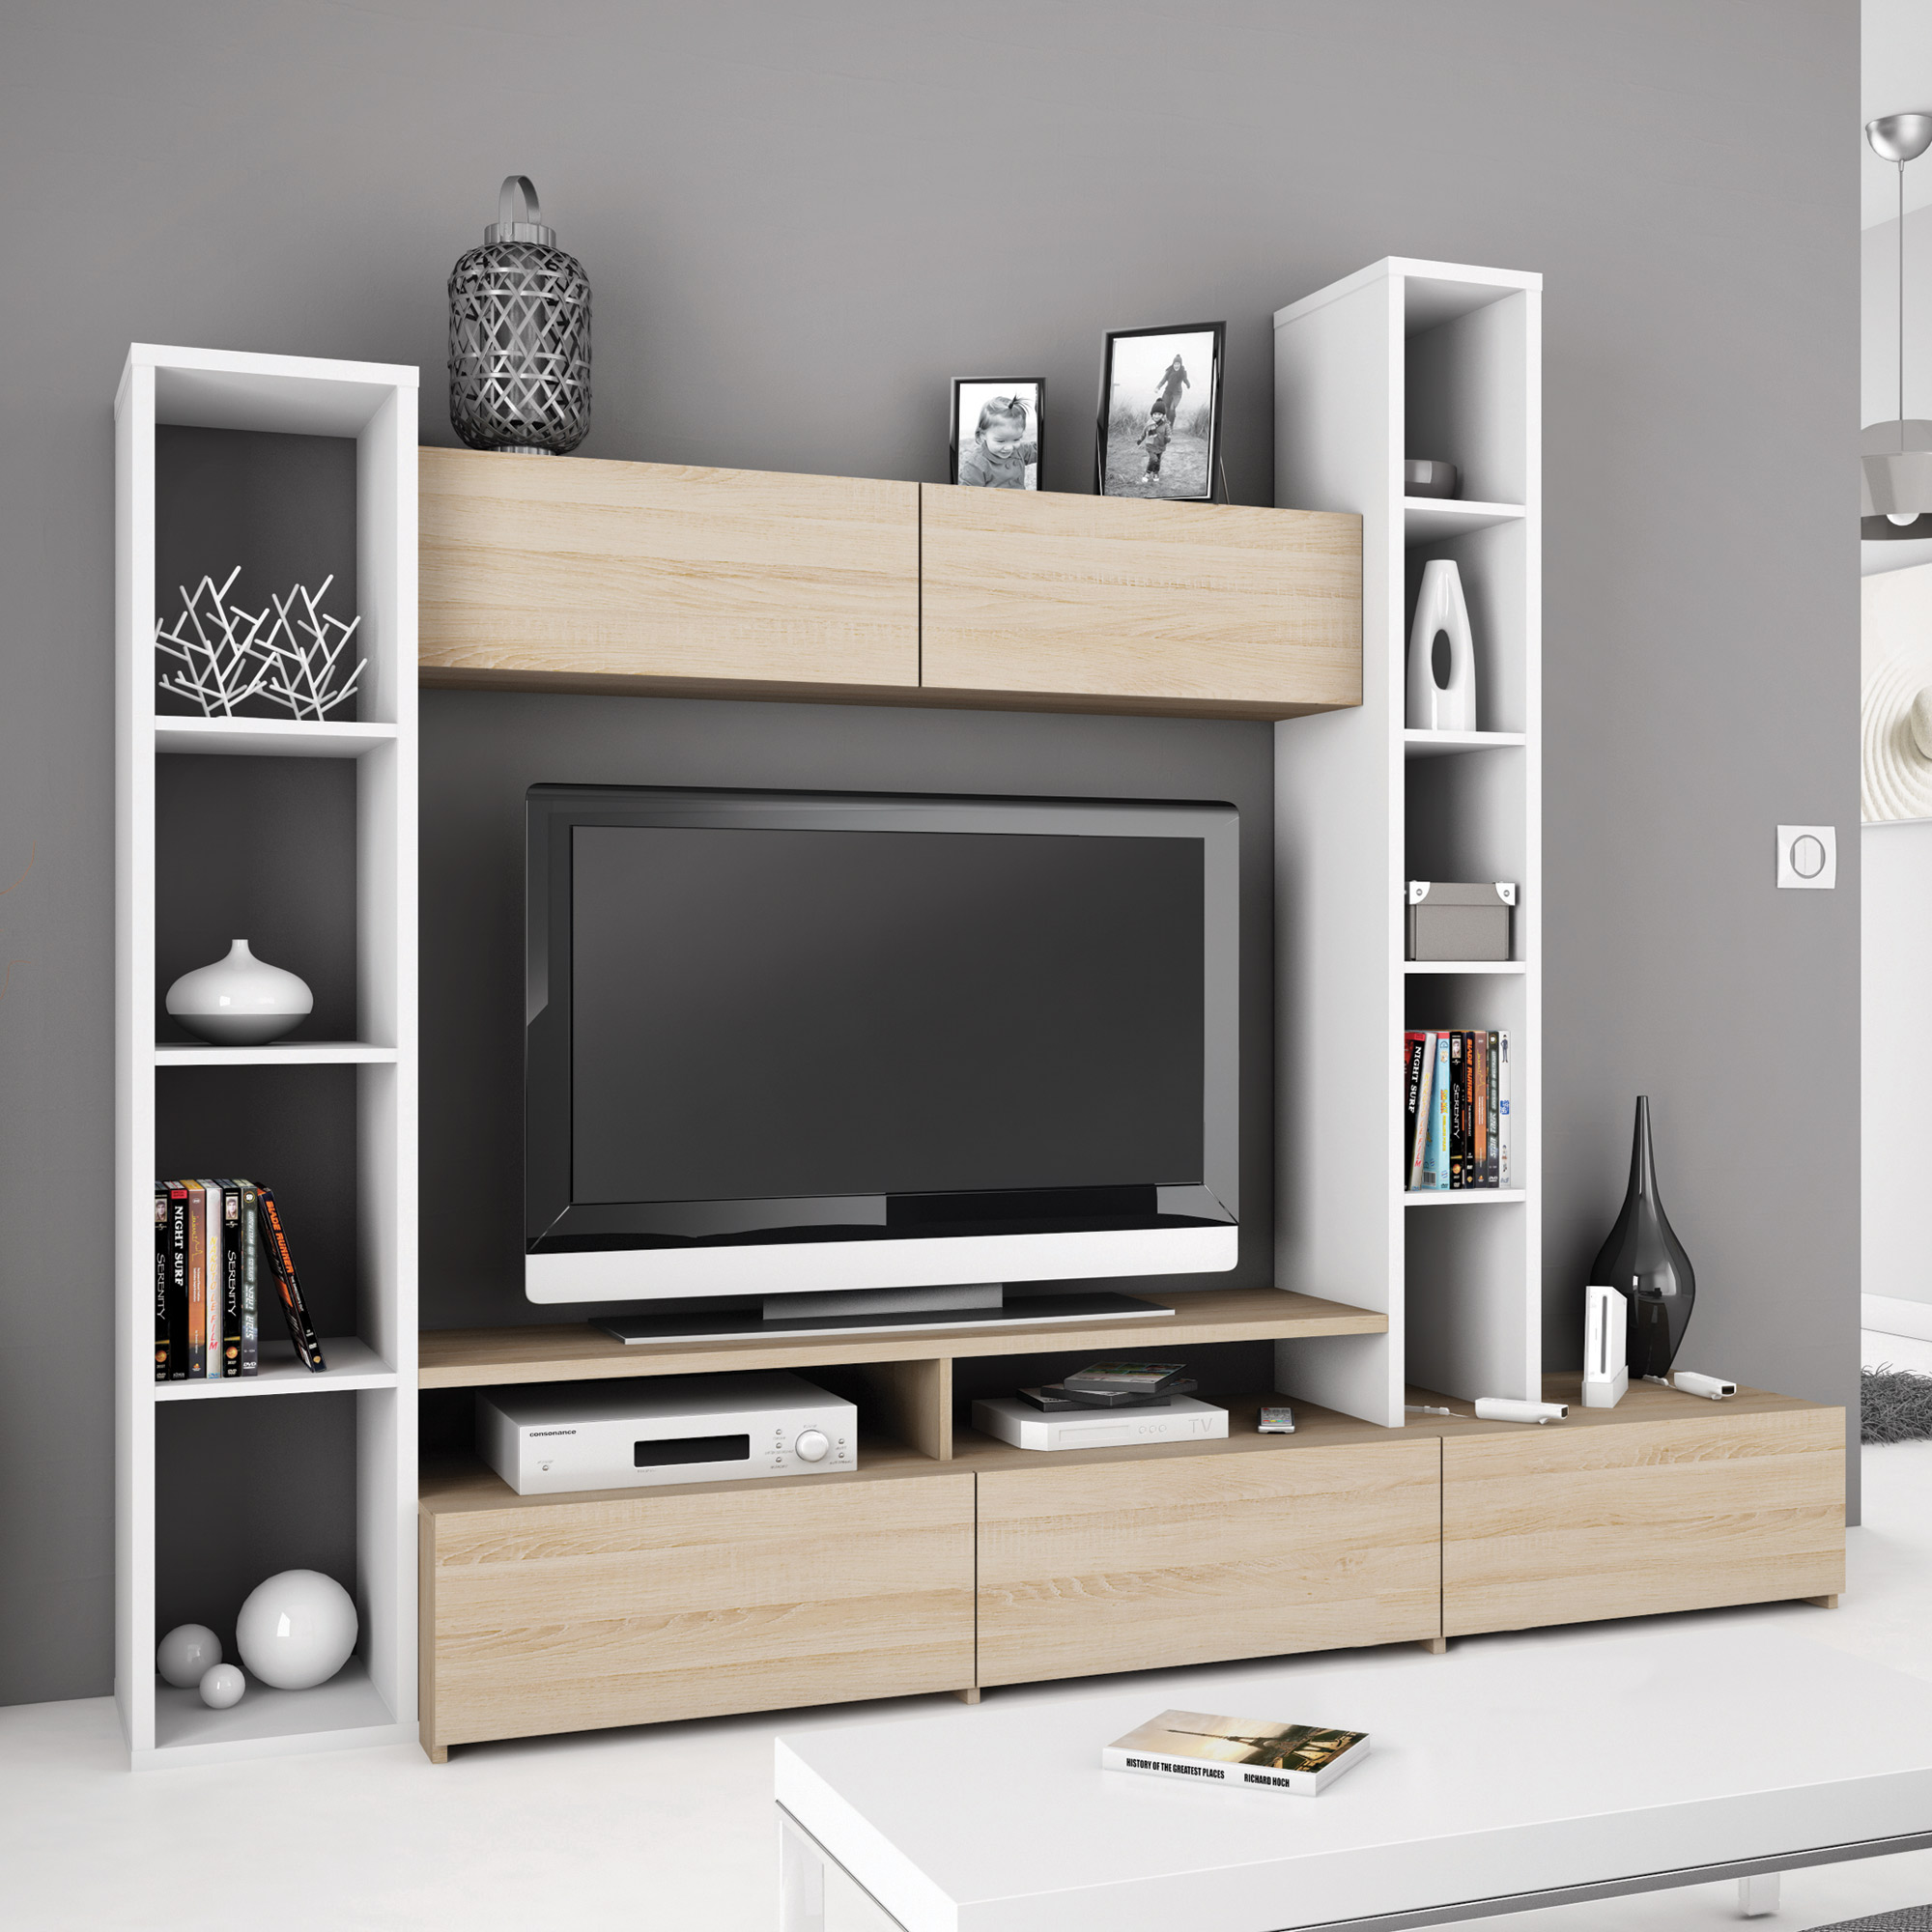 meuble tv blanc avec rangement mobilier design. Black Bedroom Furniture Sets. Home Design Ideas